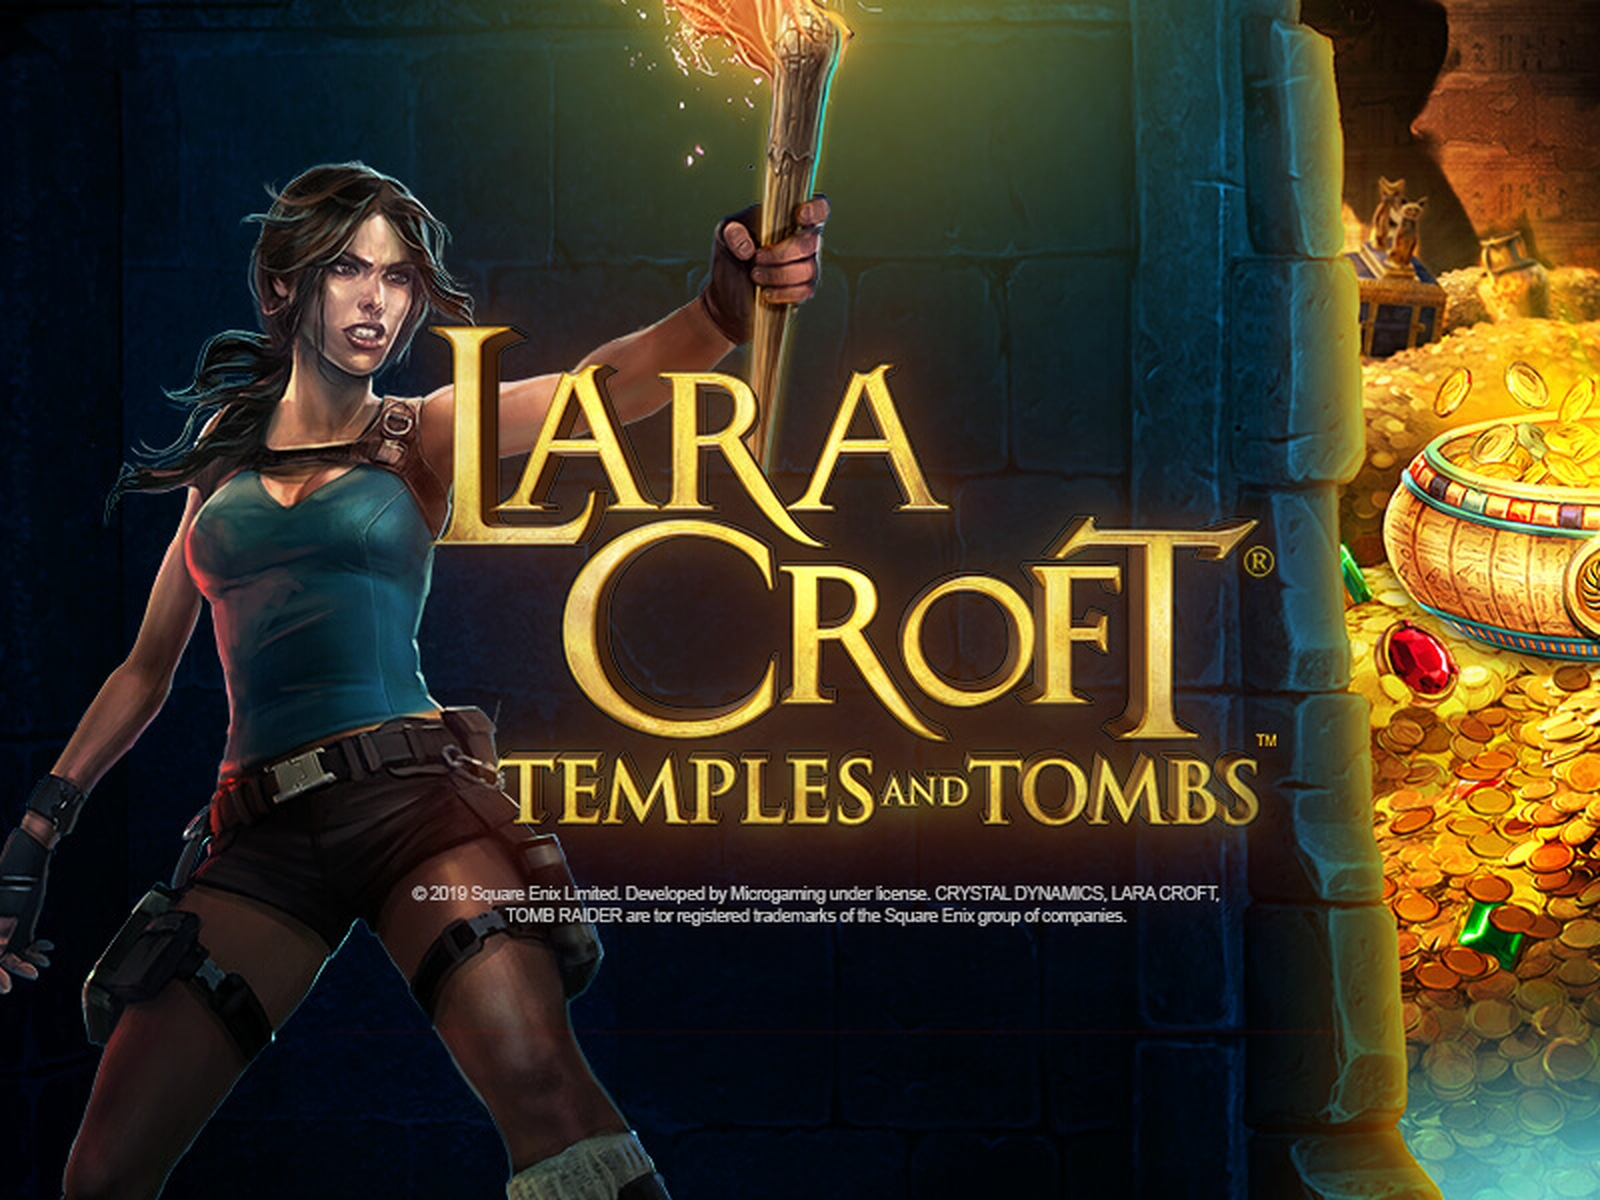 The Lara Croft Temples and Tombs Online Slot Demo Game by Triple Edge Studios